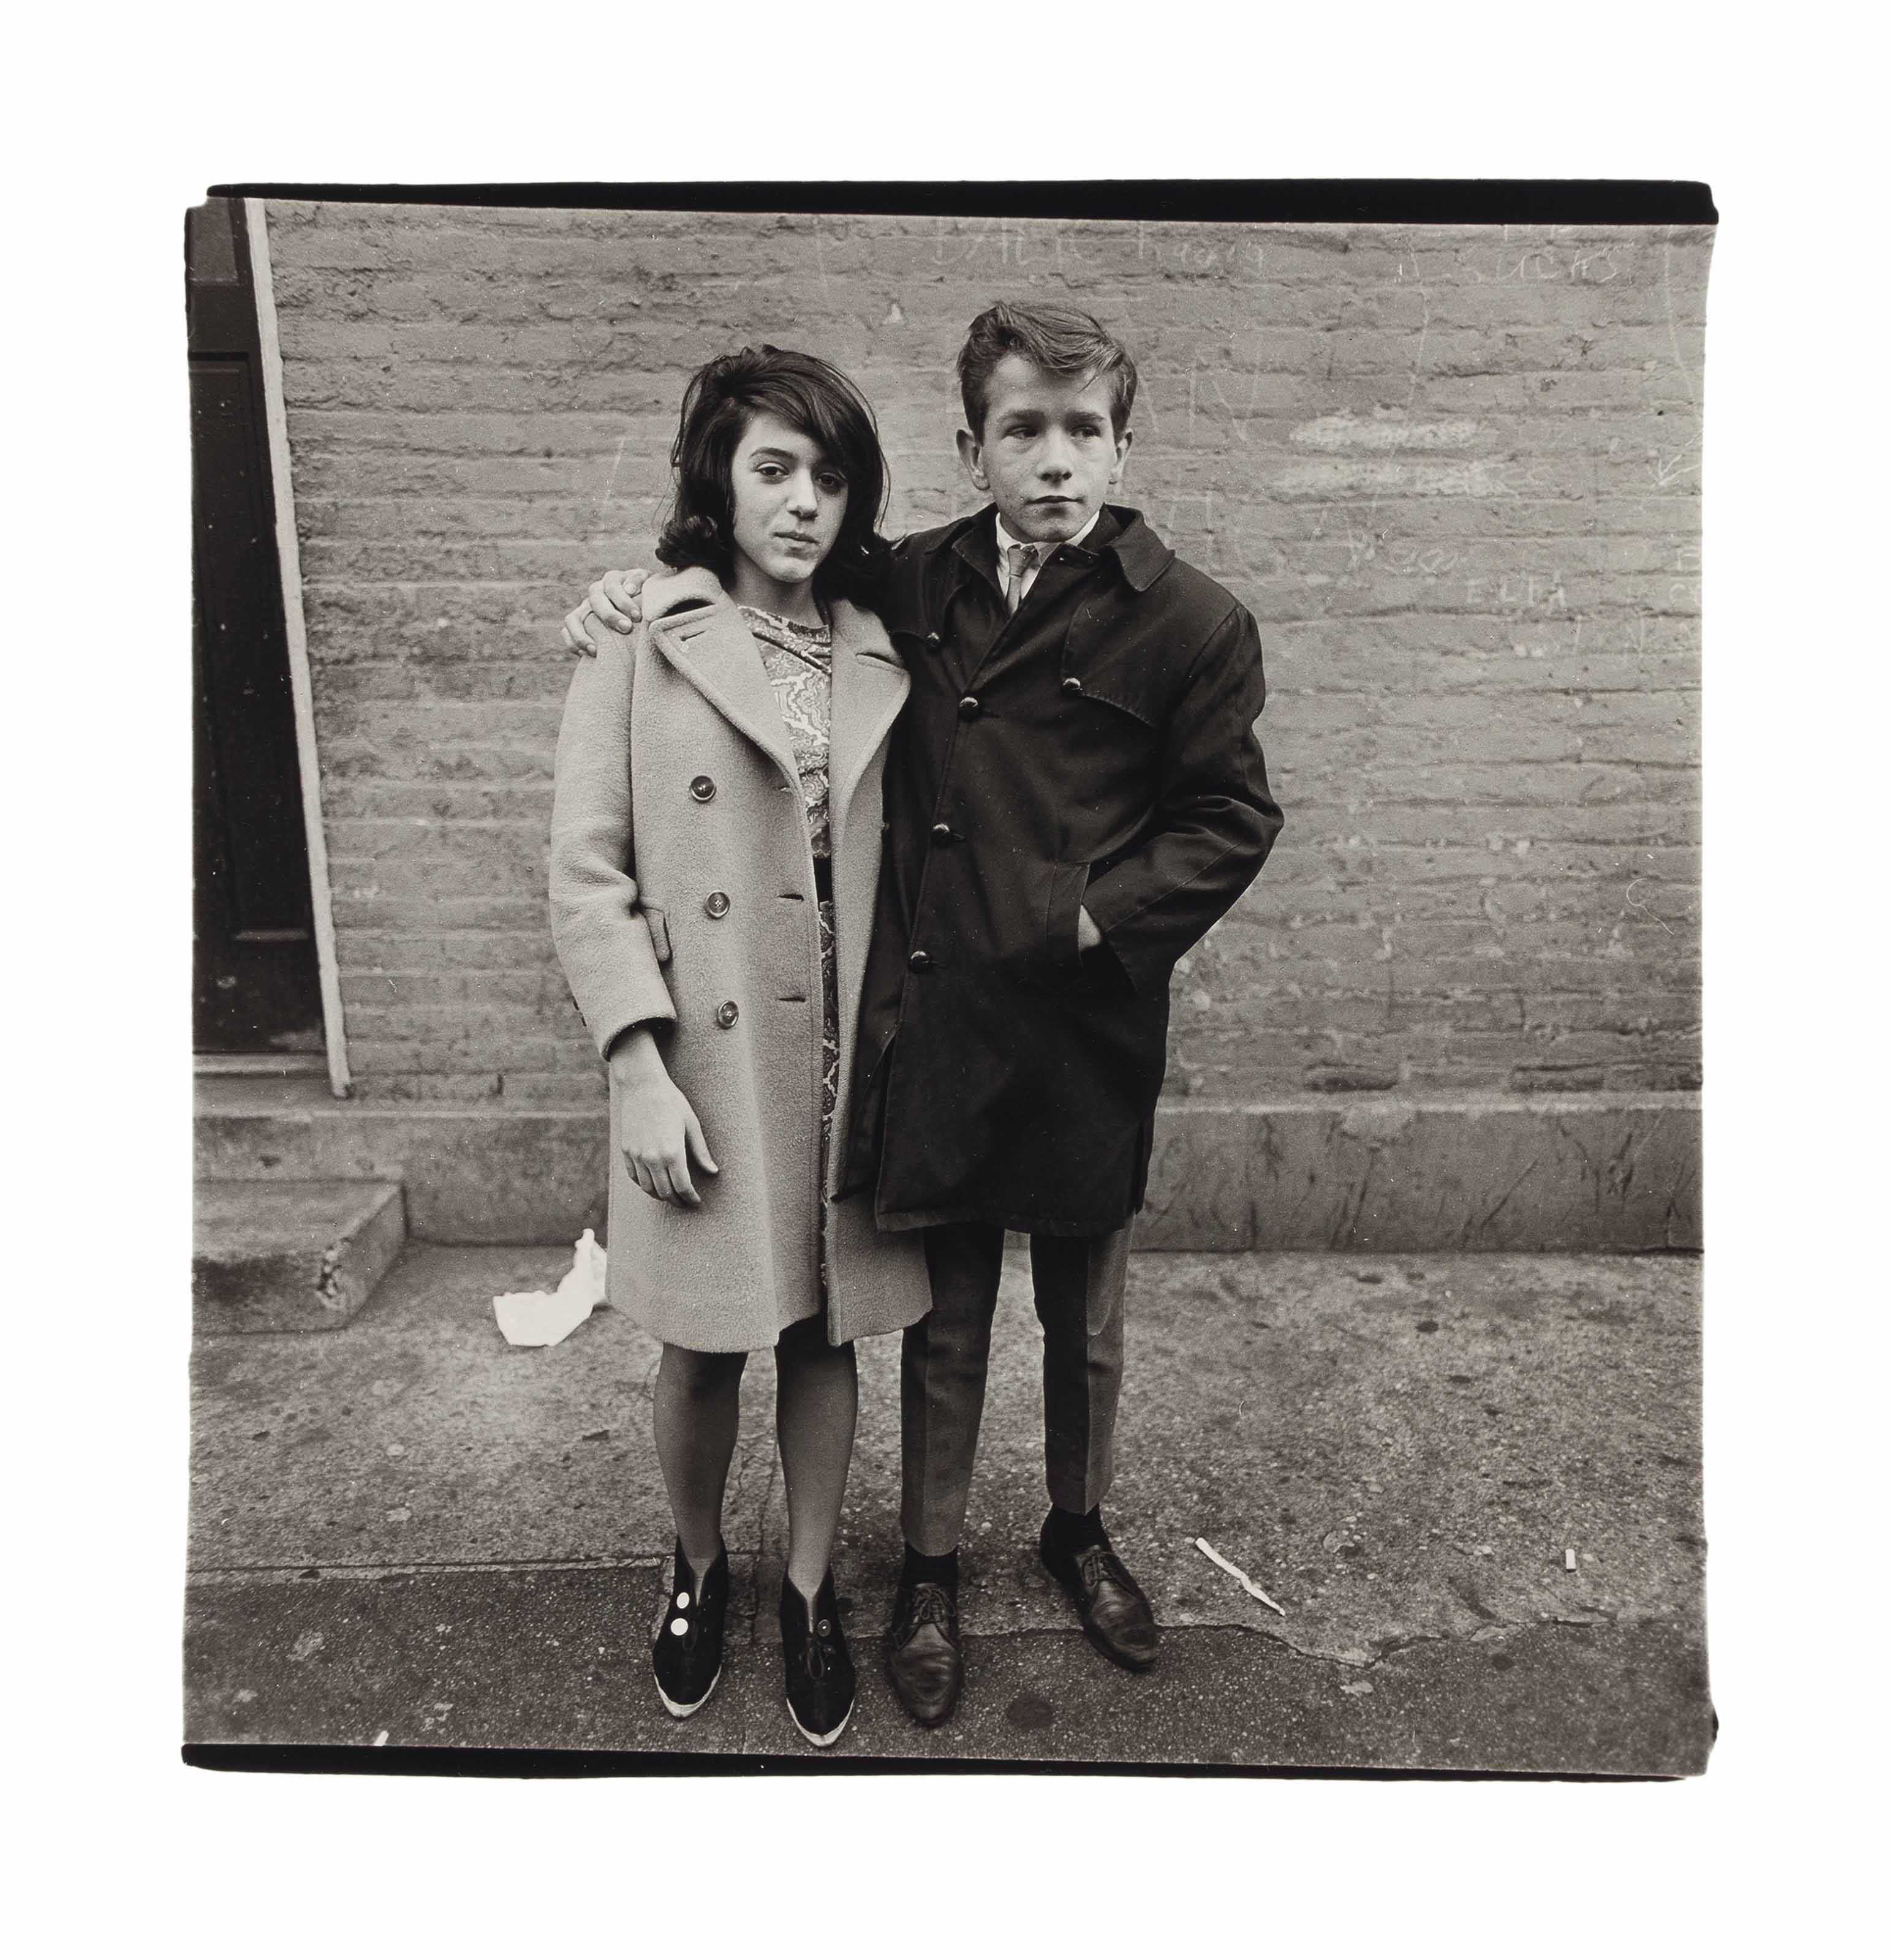 Teenage Couple on Hudson Street, N.Y.C., 1963